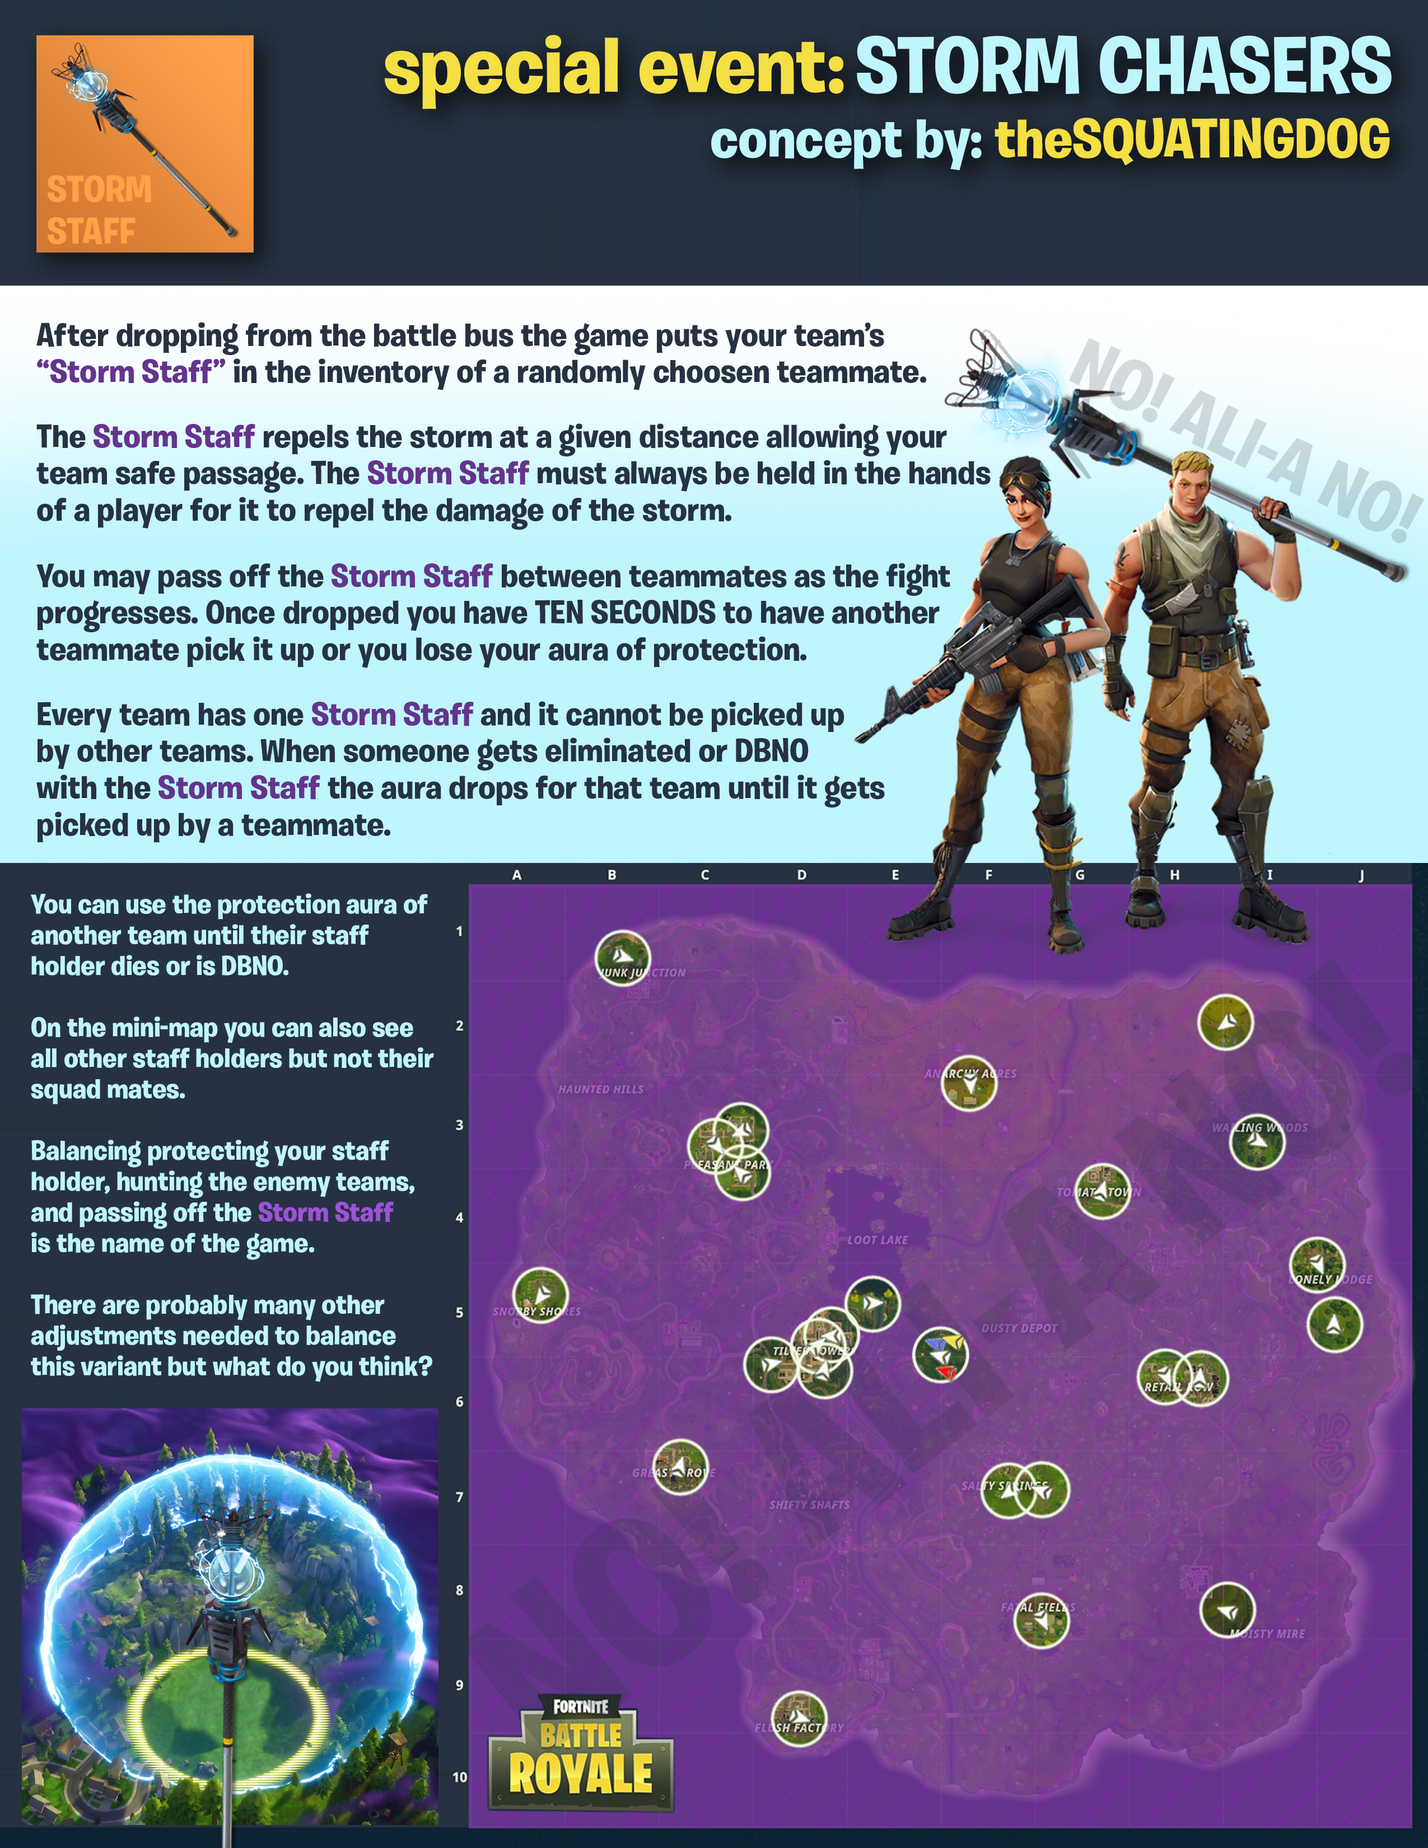 Reddit: New Fortnite Game Mode Concept-Storm Chasers